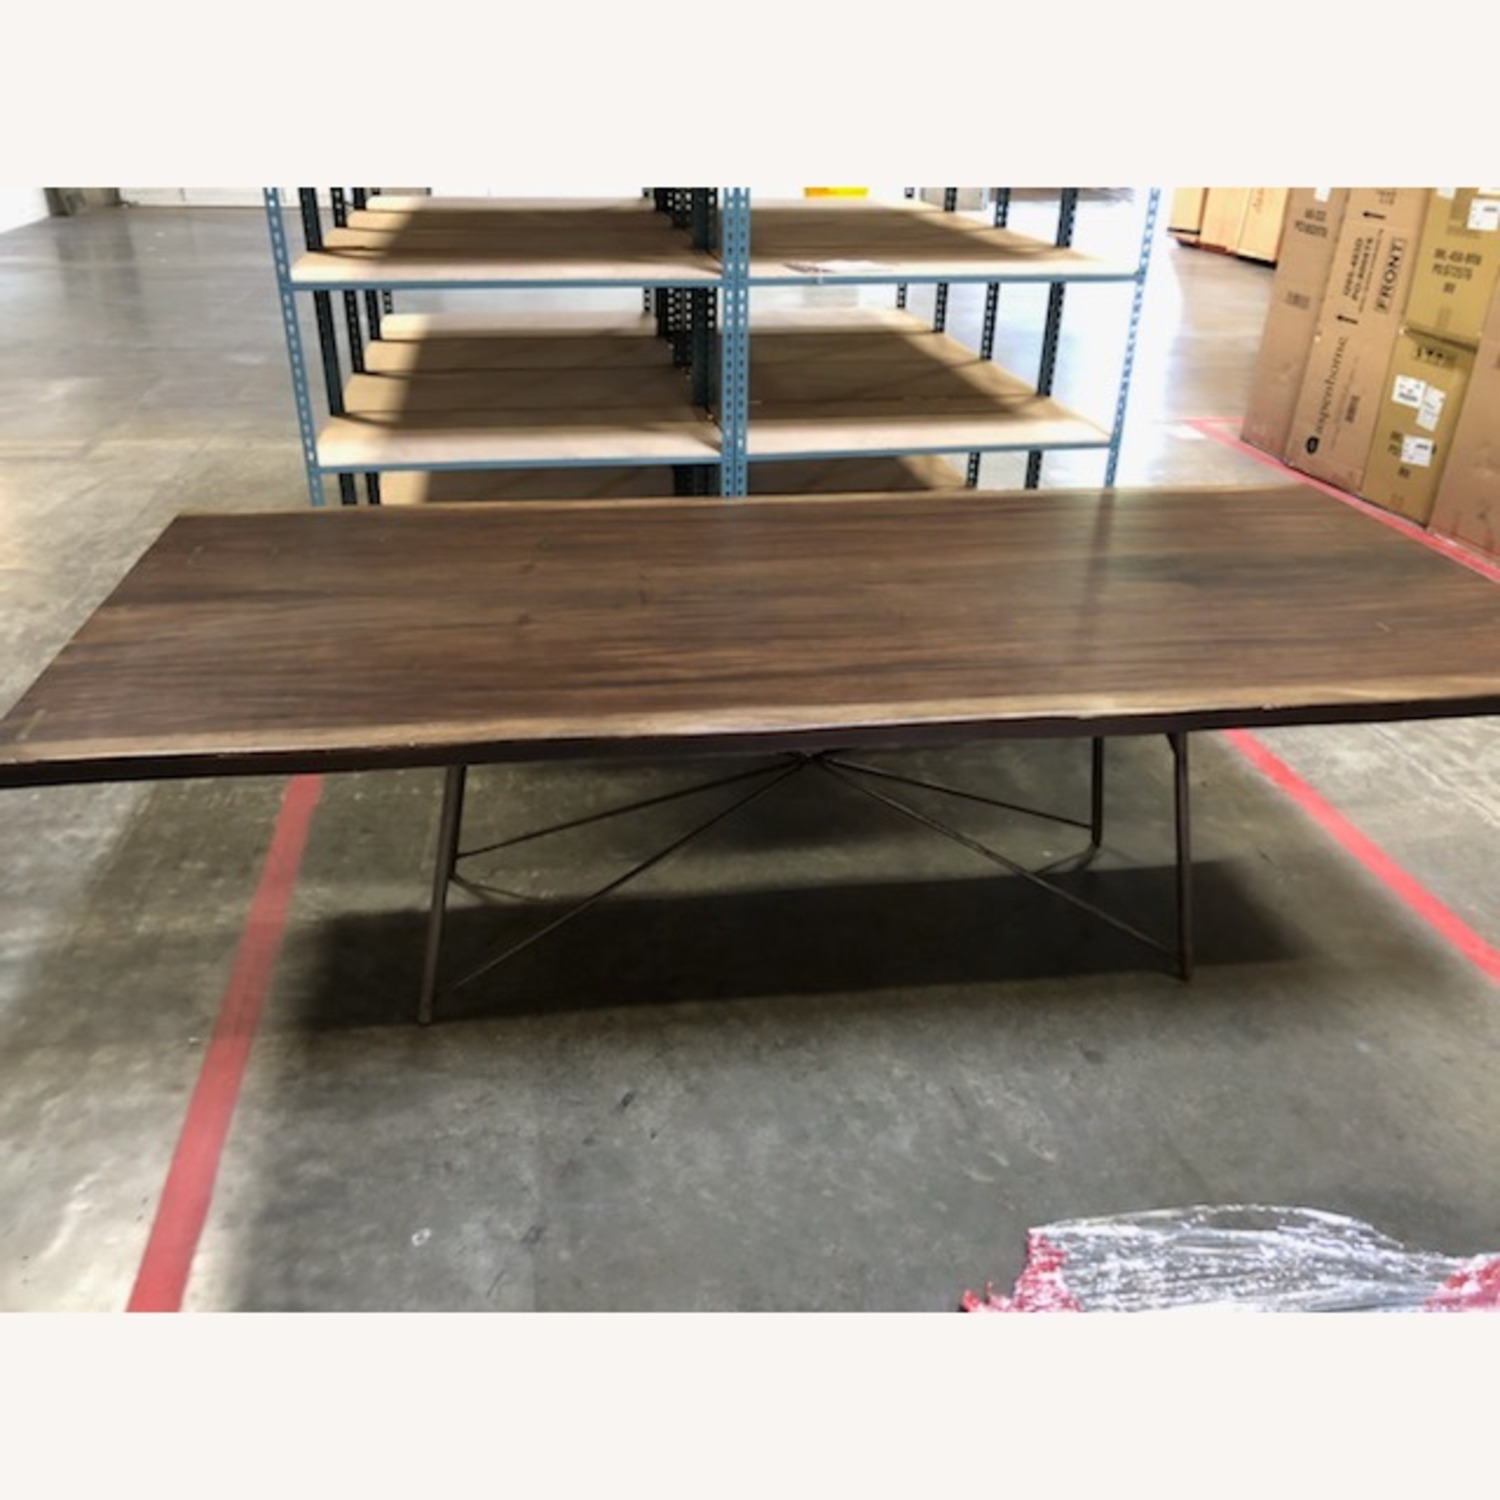 Four Hands Sula Dining Table - image-2